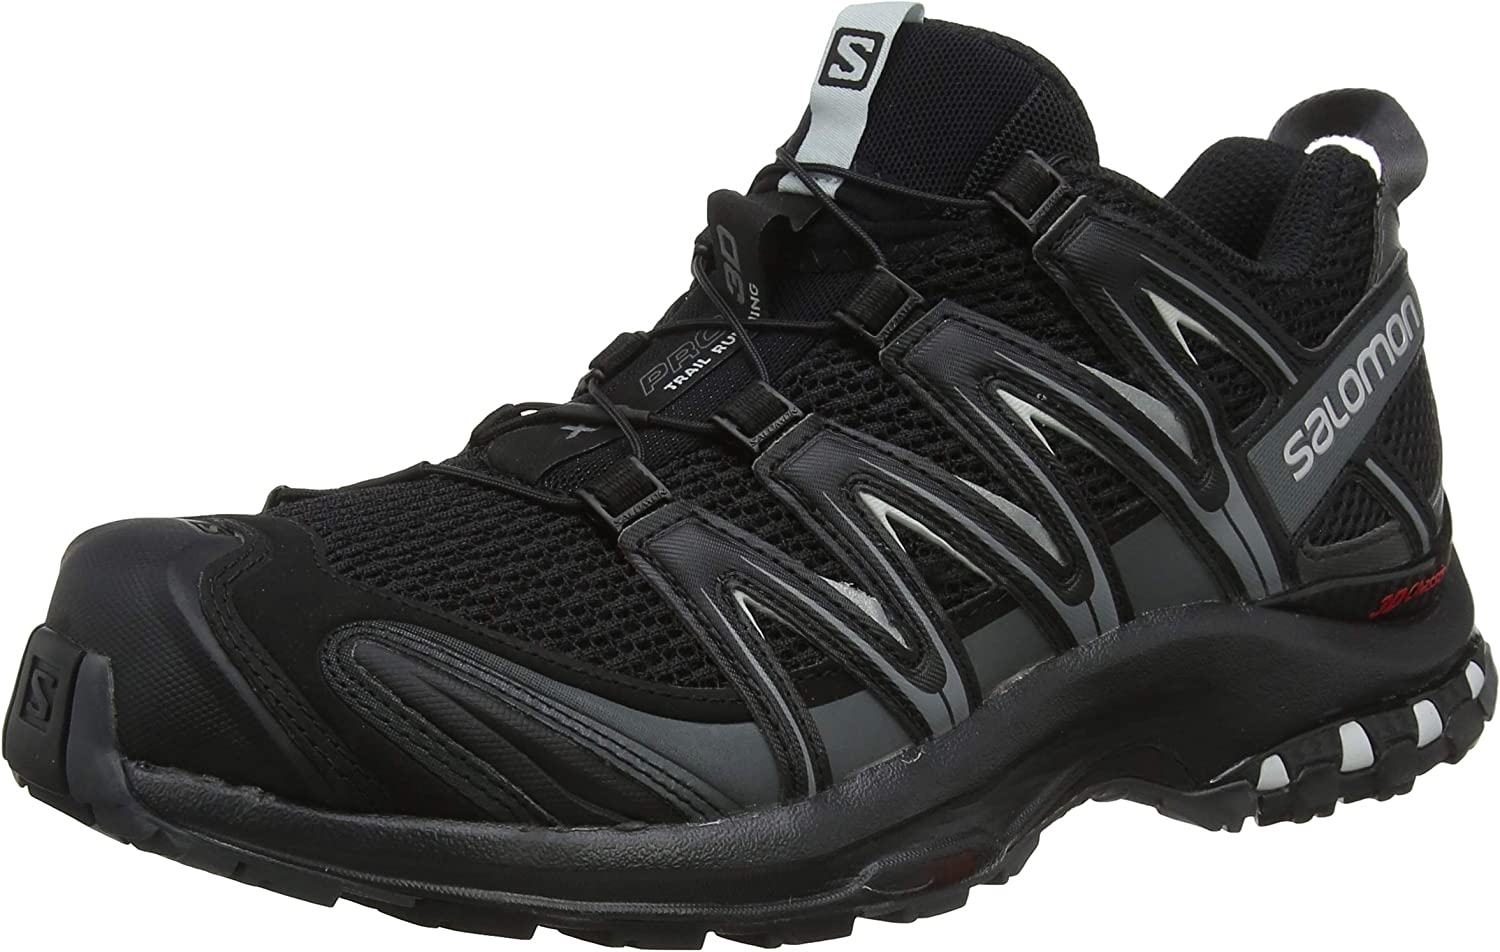 Salomon Men s Xa Pro 3D Trail Running Shoes